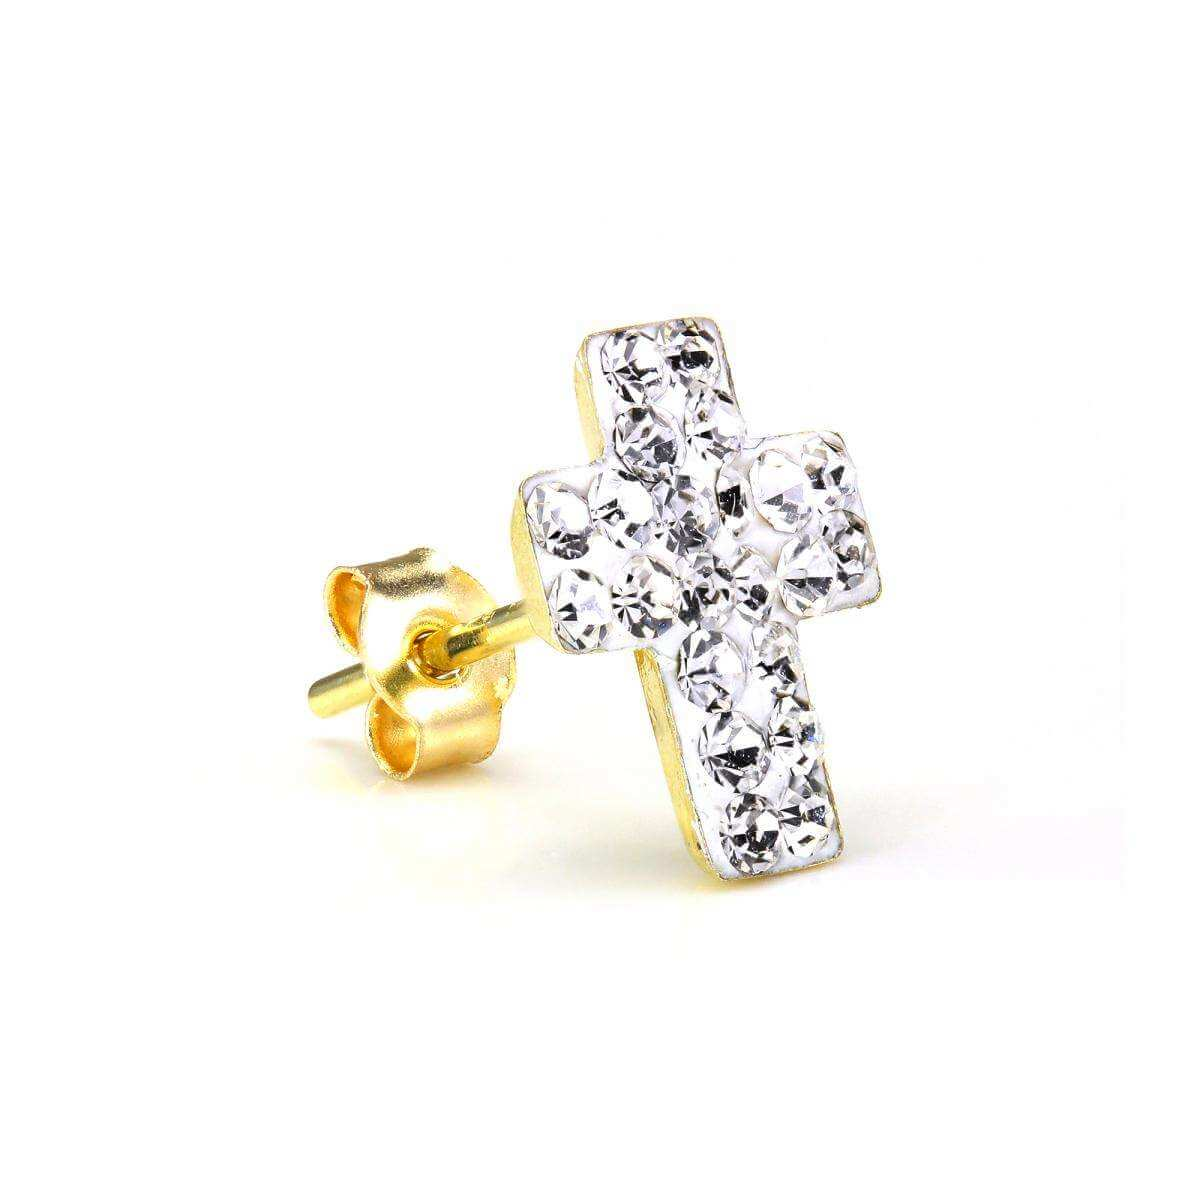 9ct Gold & CZ Crystal Encrusted Mens Single Cross Ear Stud Earring